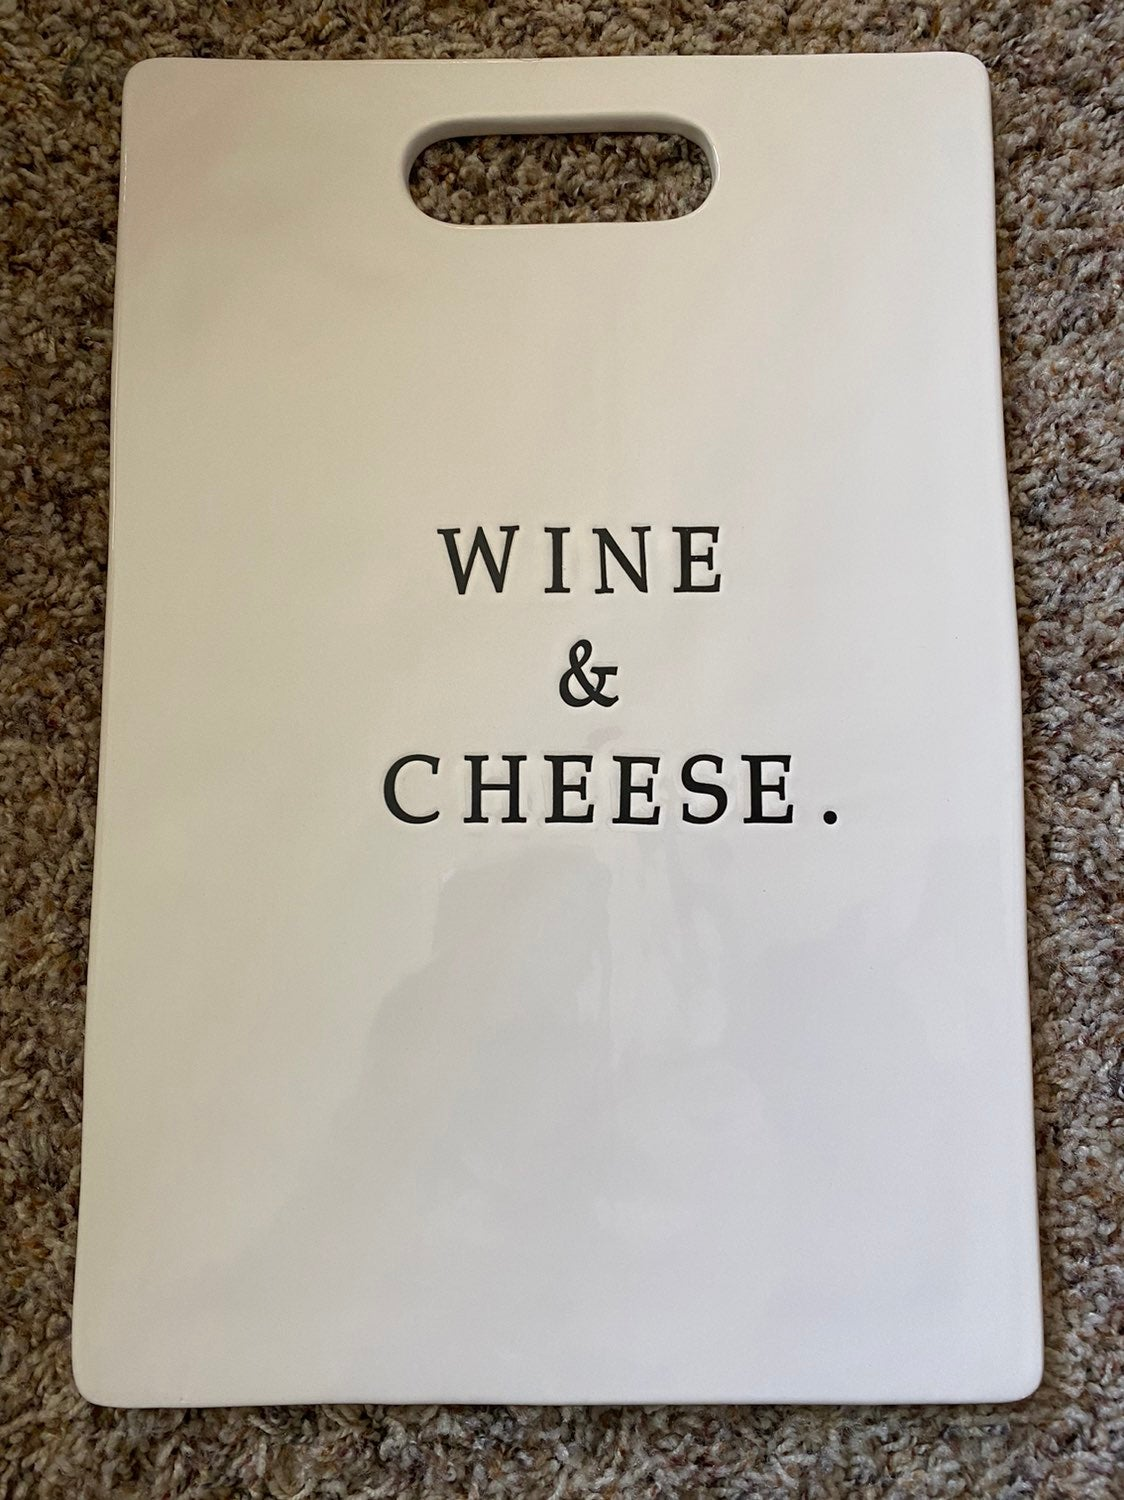 Retired Cheese & Wine board and knife se